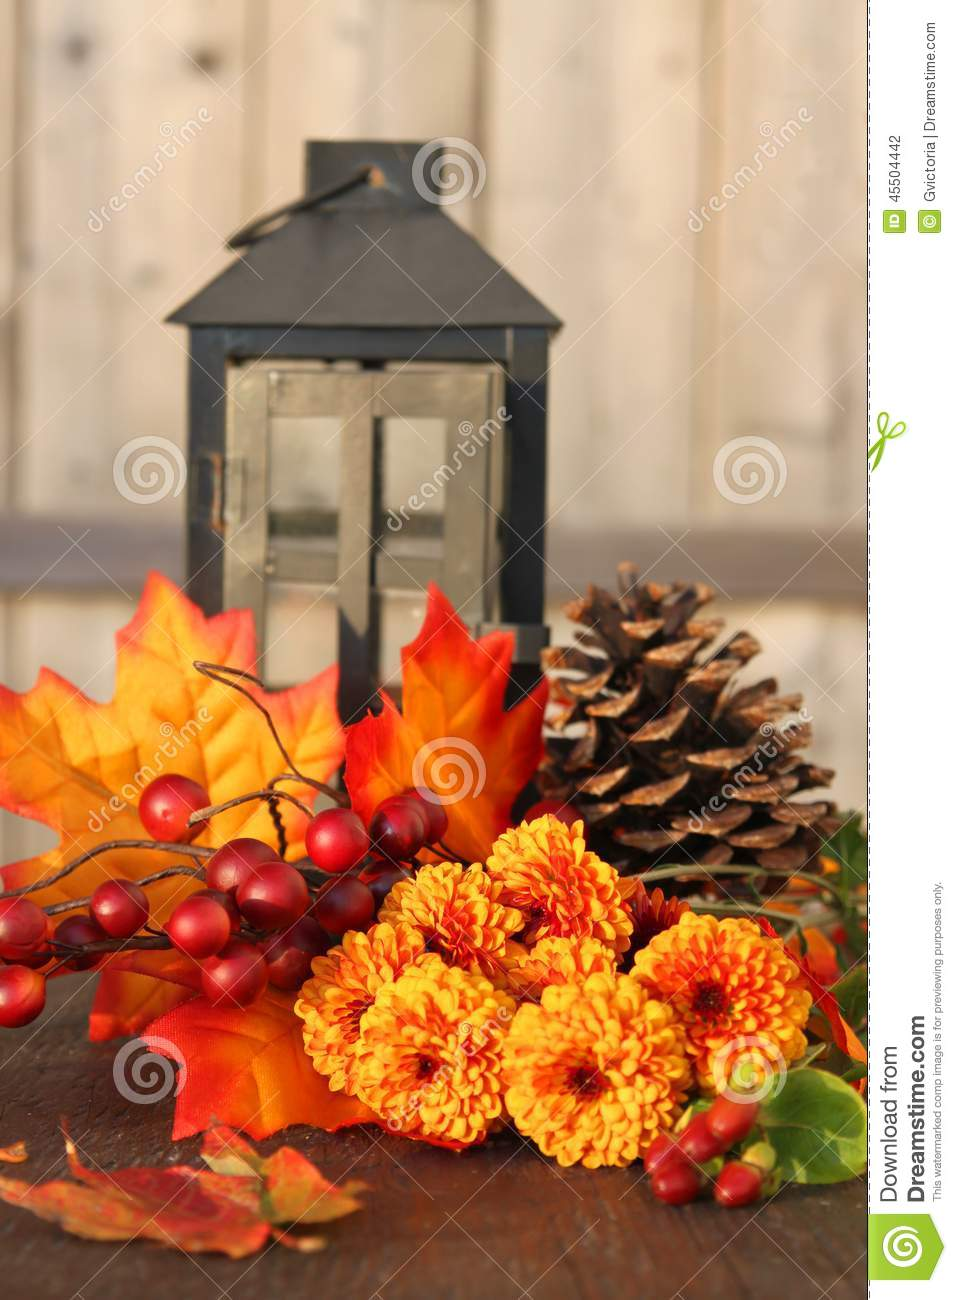 Fall Paintings Wallpaper Fall Flowers Stock Photo Image 45504442